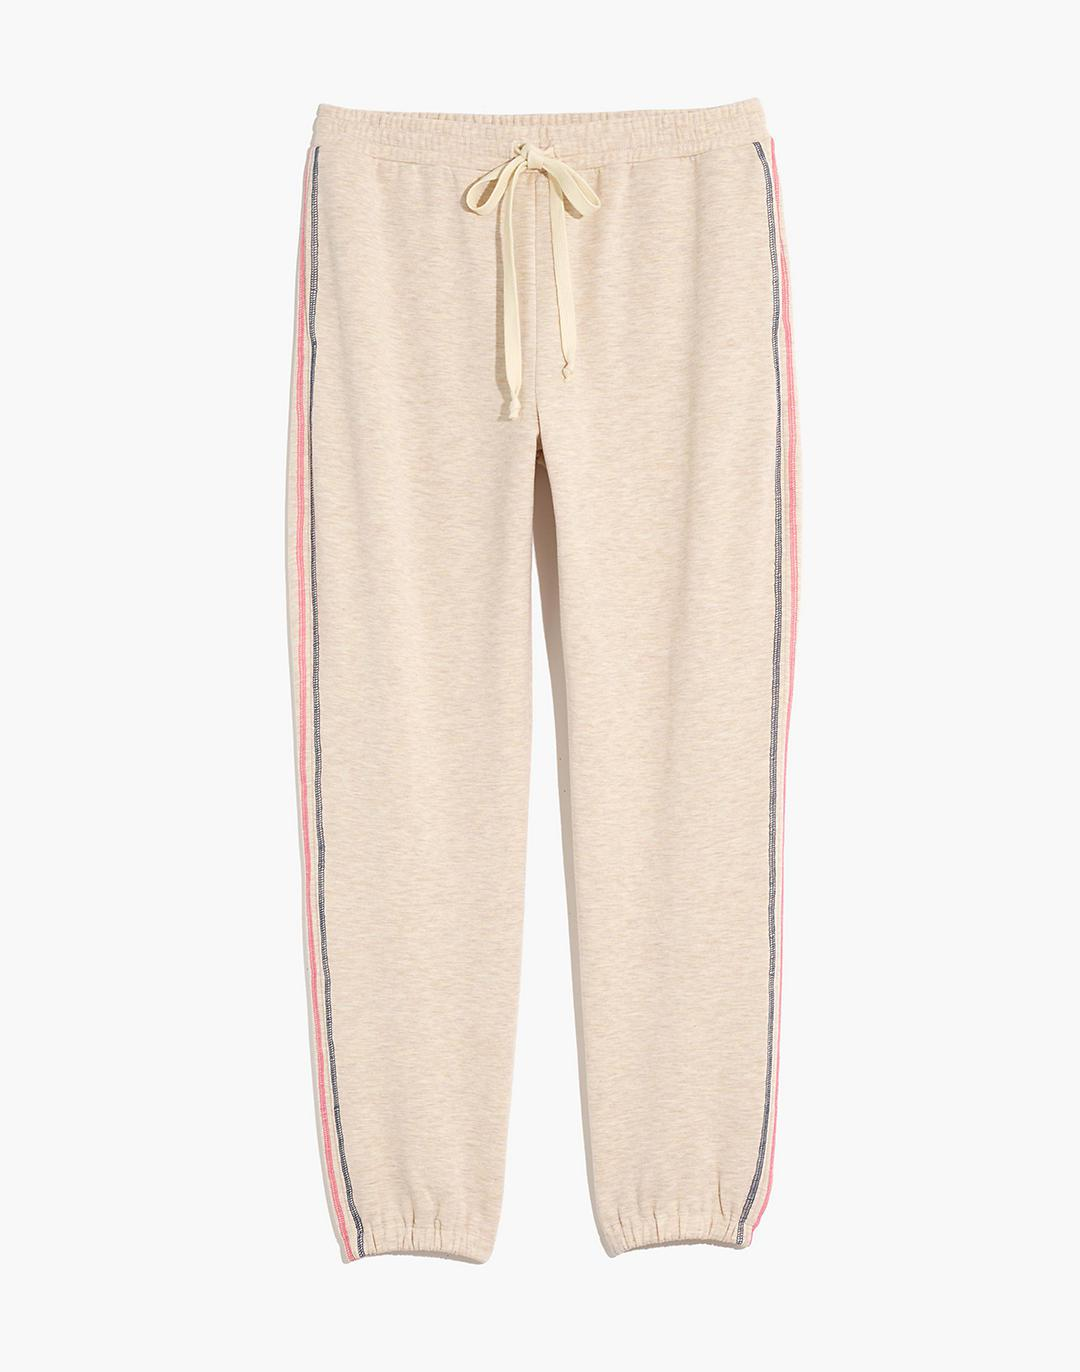 MWL Superbrushed Contrast-Stitched Easygoing Sweatpants 4